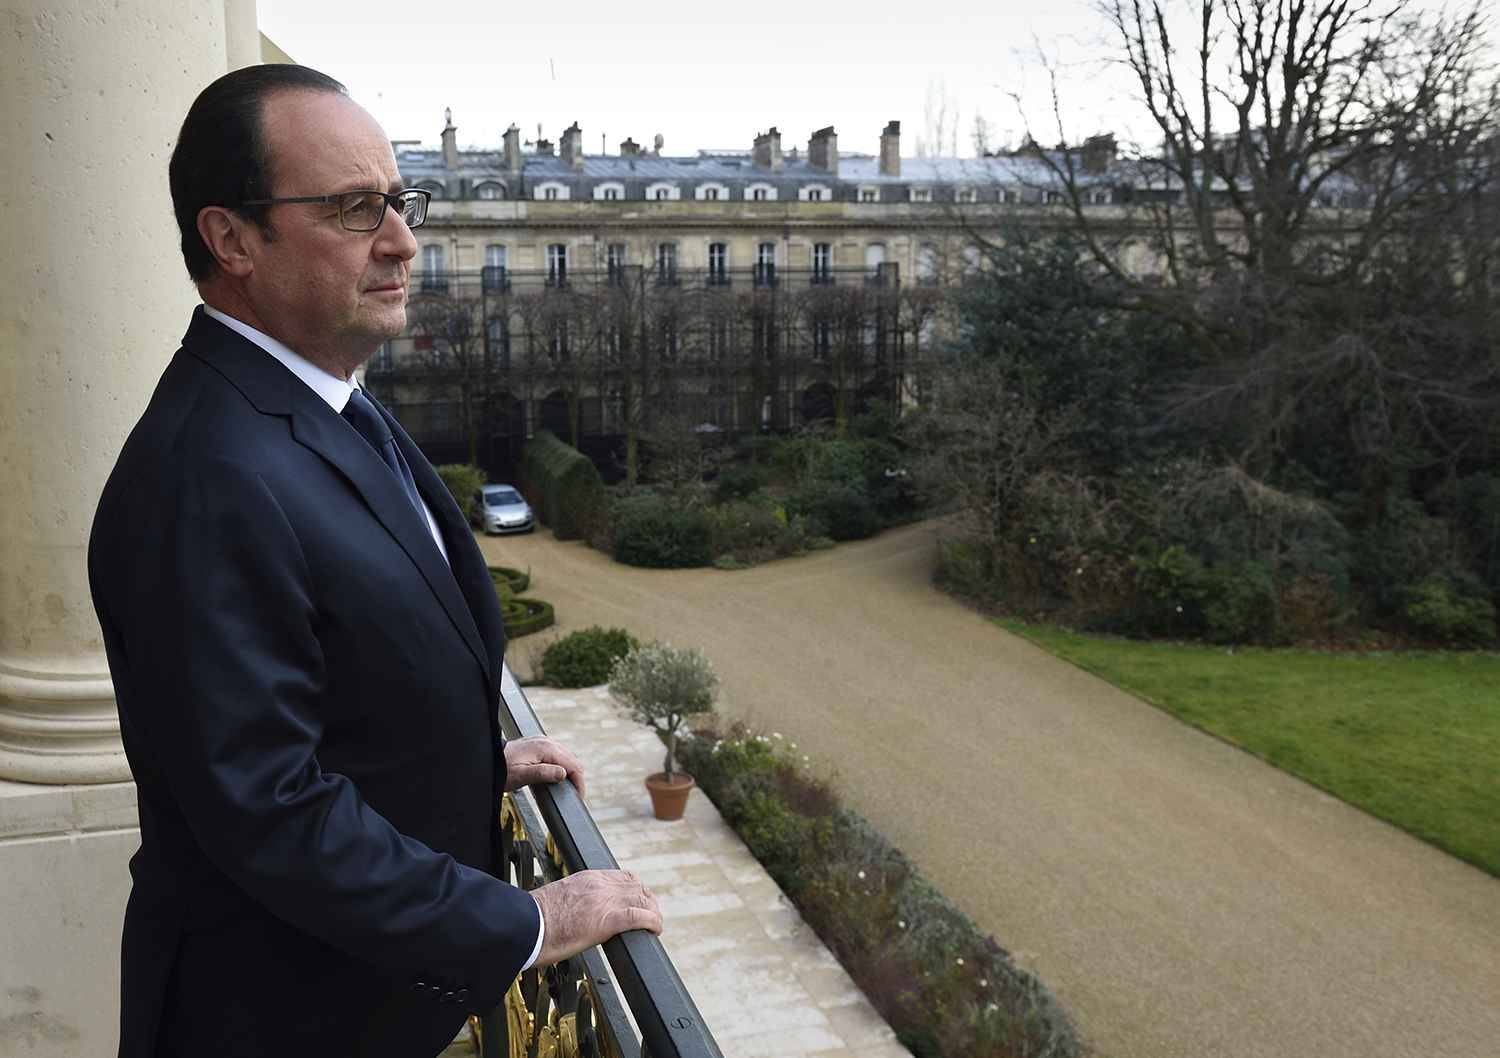 Passation de pouvoir Hollande-Macron — France